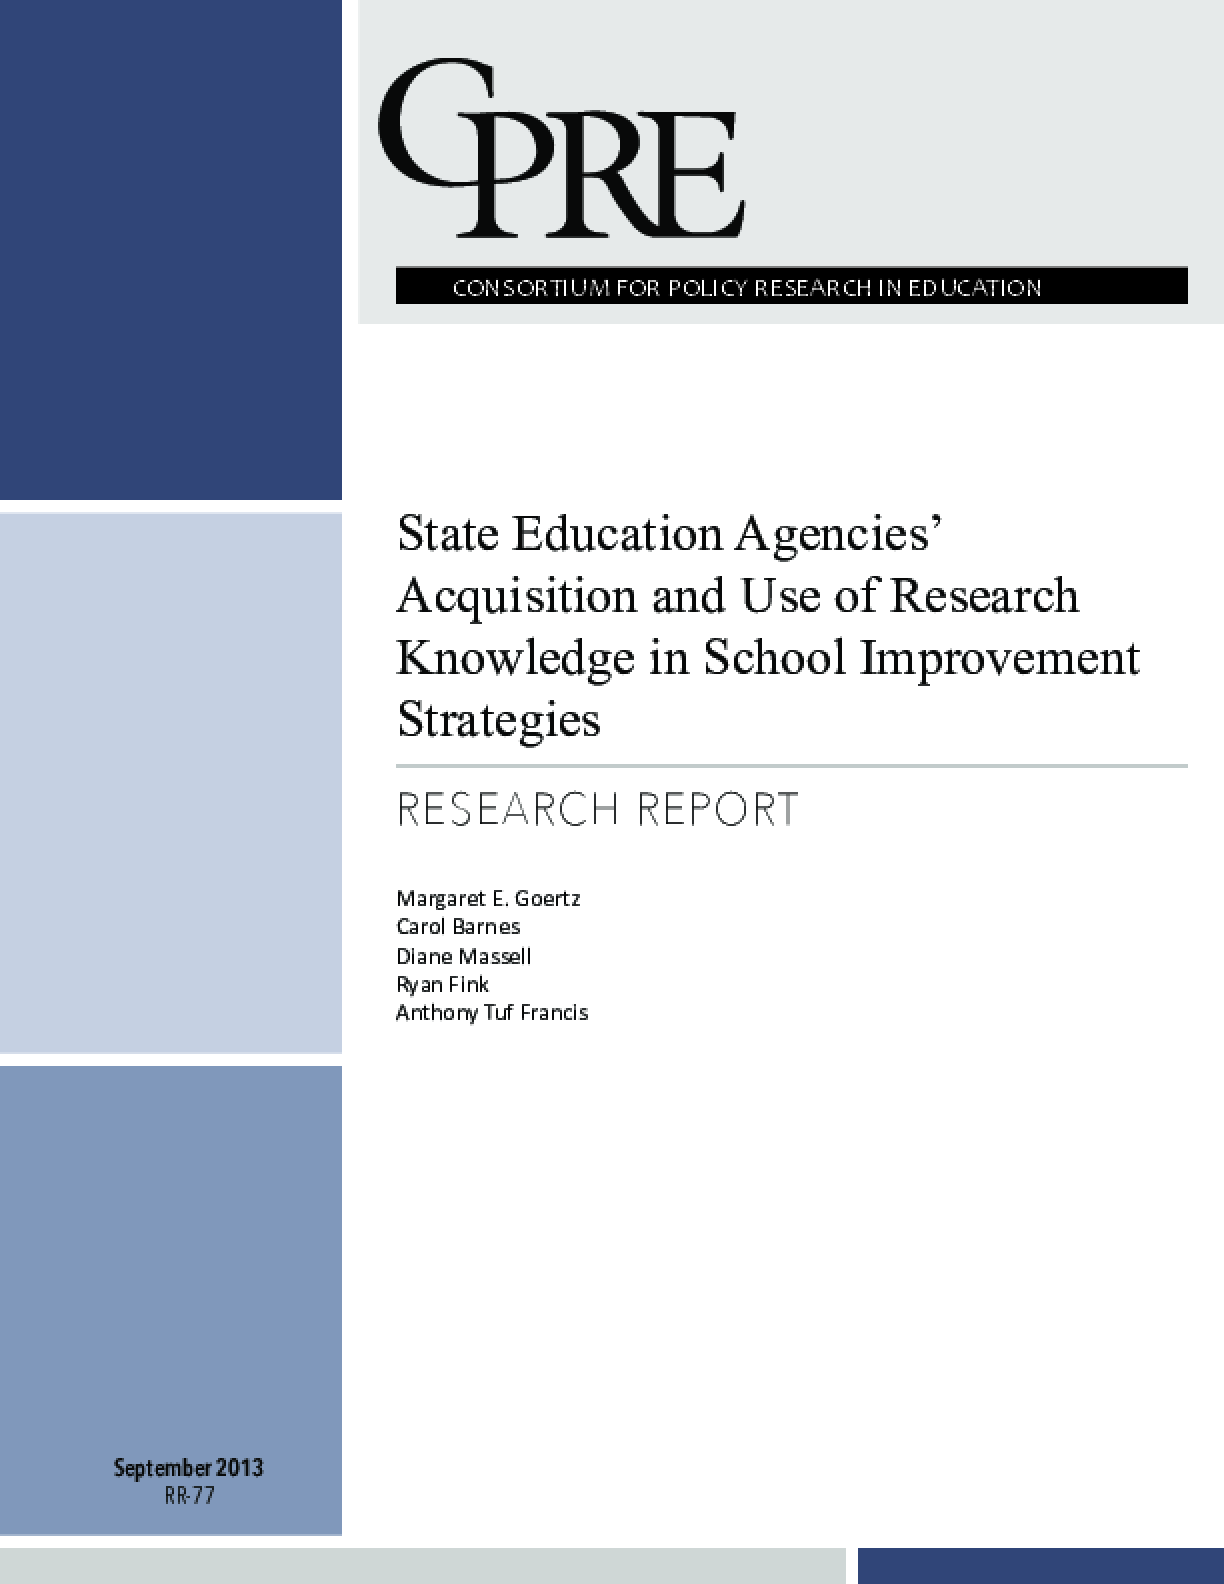 State Education Agencies' Acquisition and Use of Research Knowledge for School Improvement Strategies